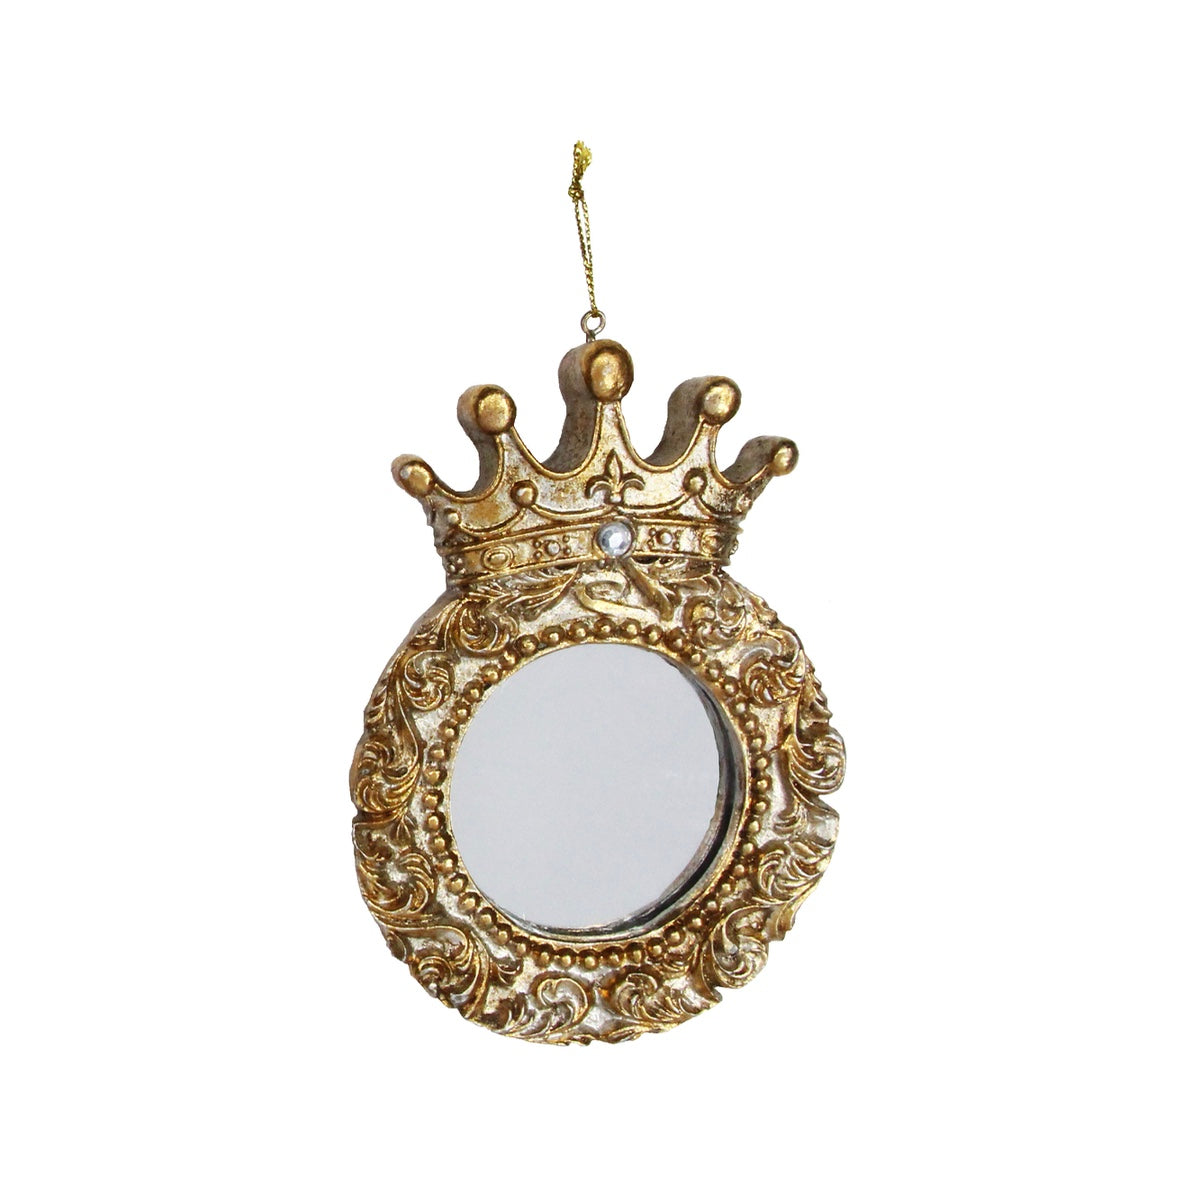 Gold Mirror with Crown Hanging Ornament - Round